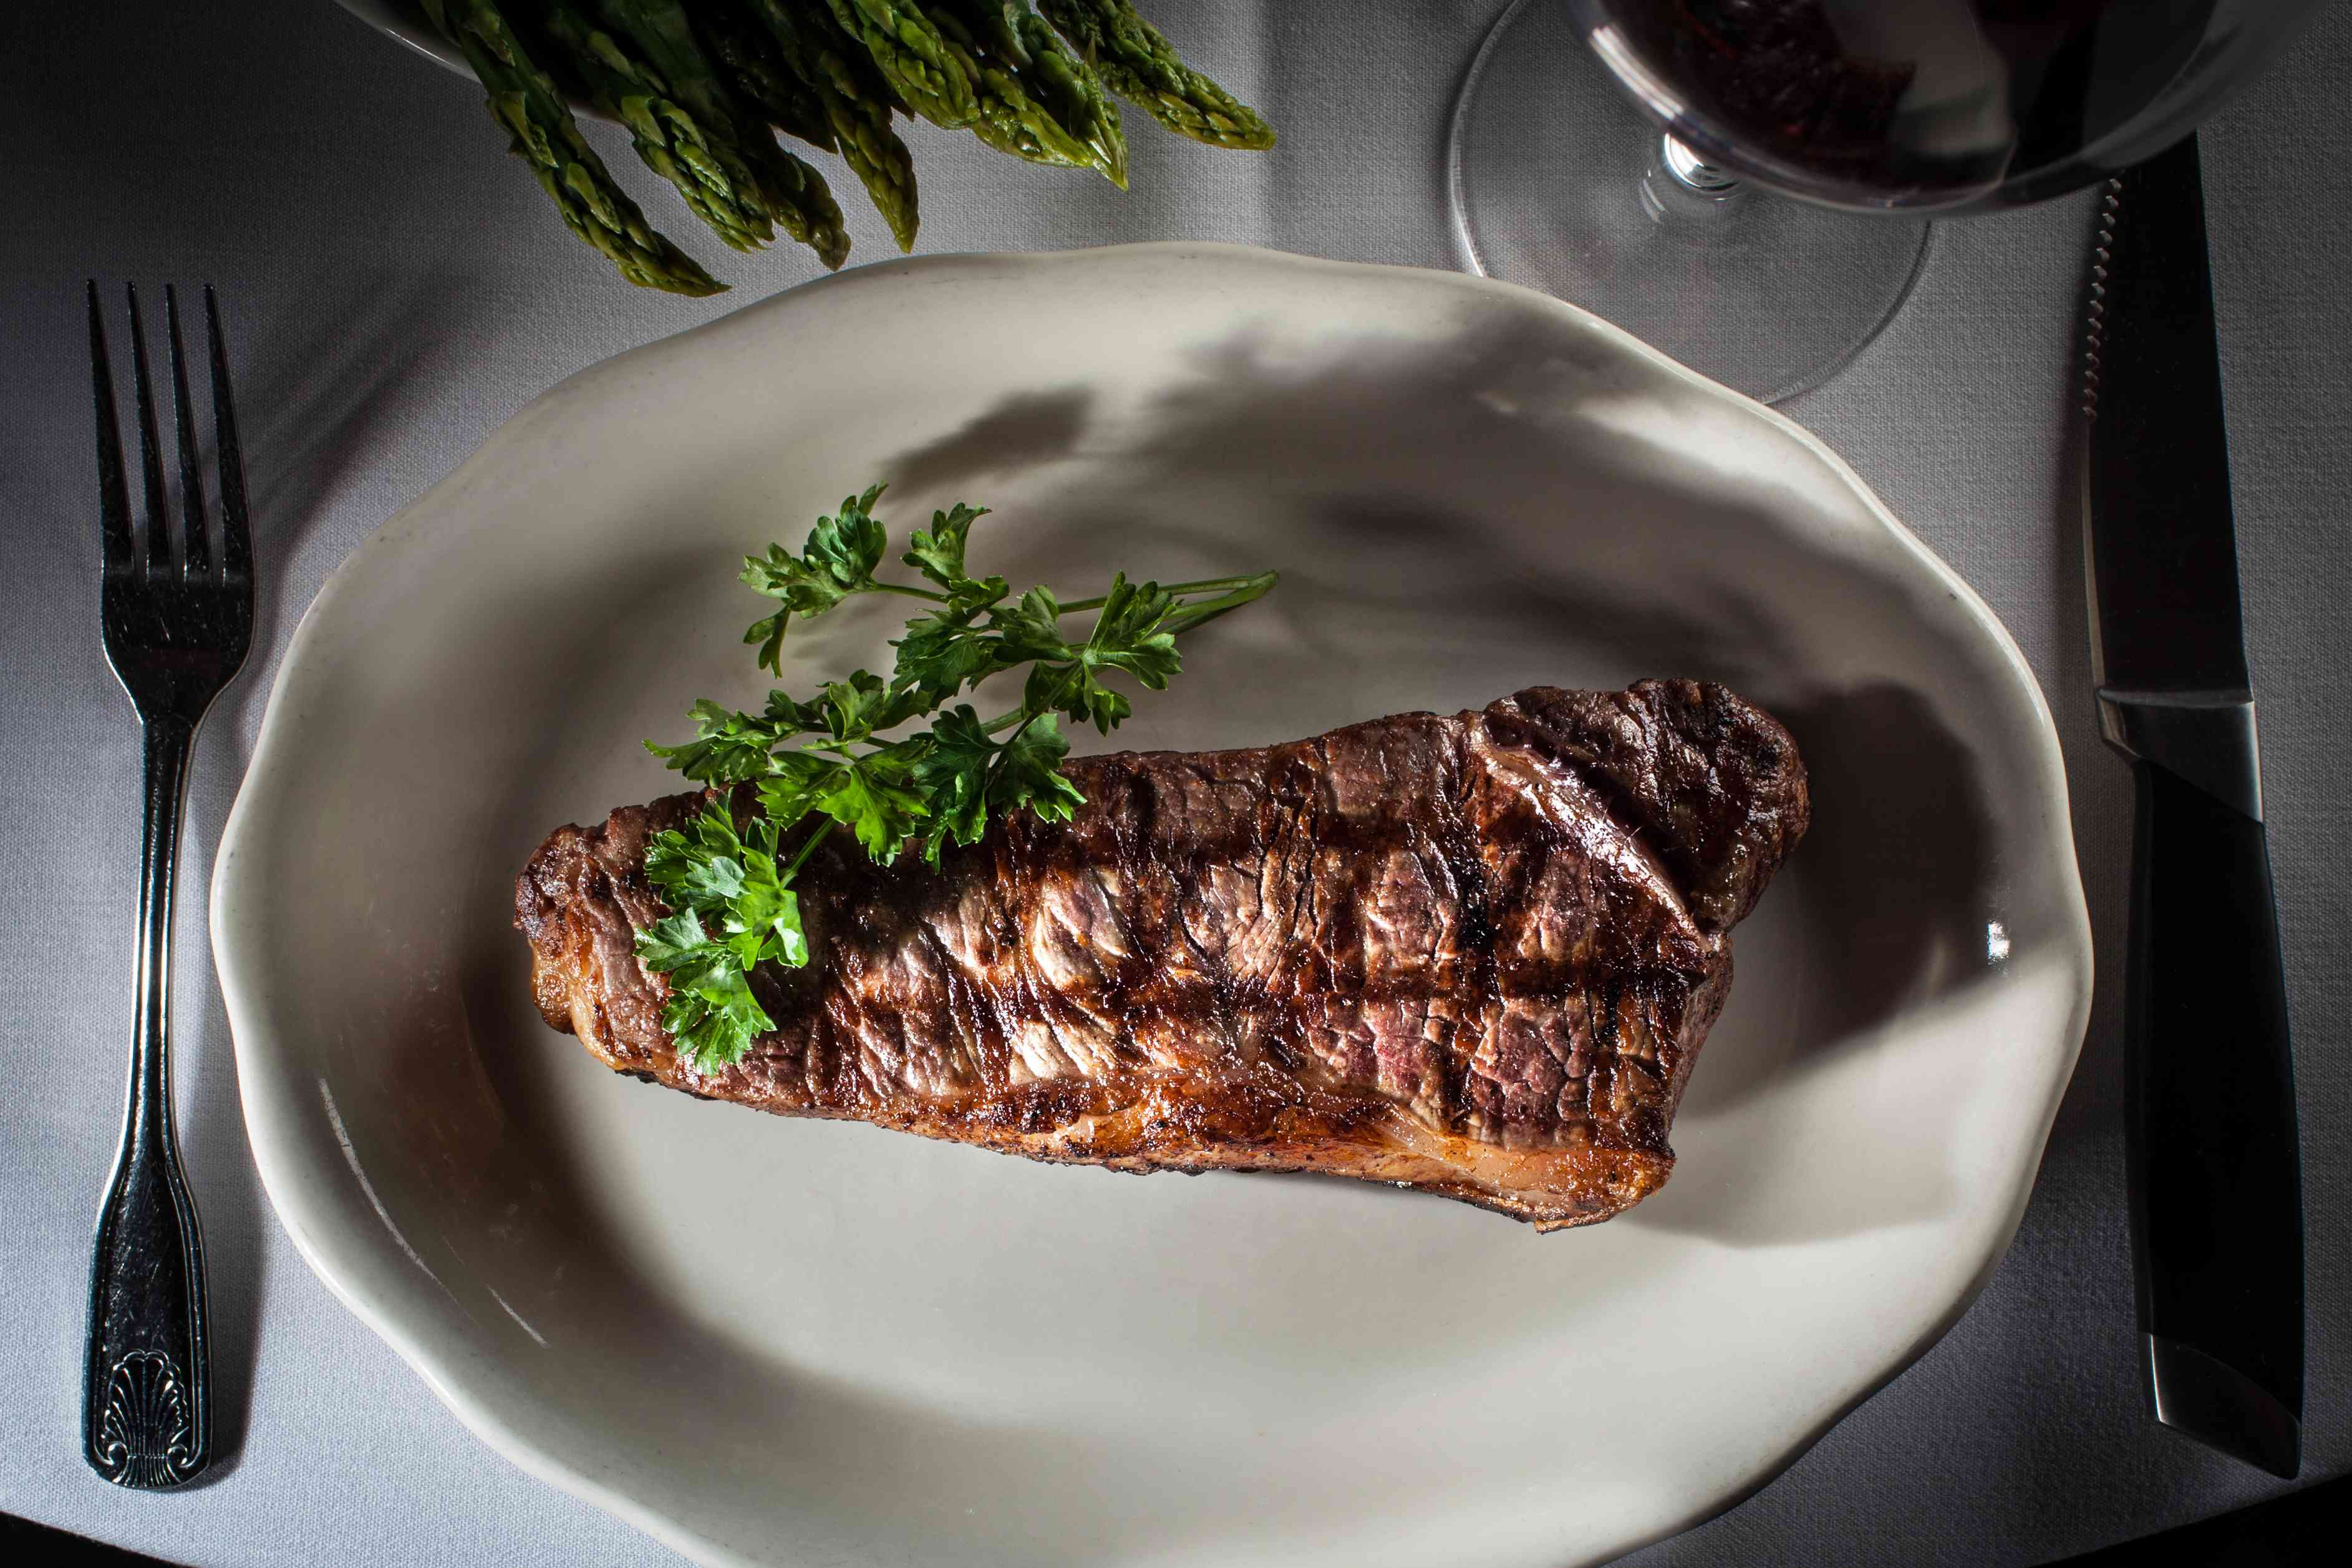 New York strip steak on a plate with a fork and steak knife